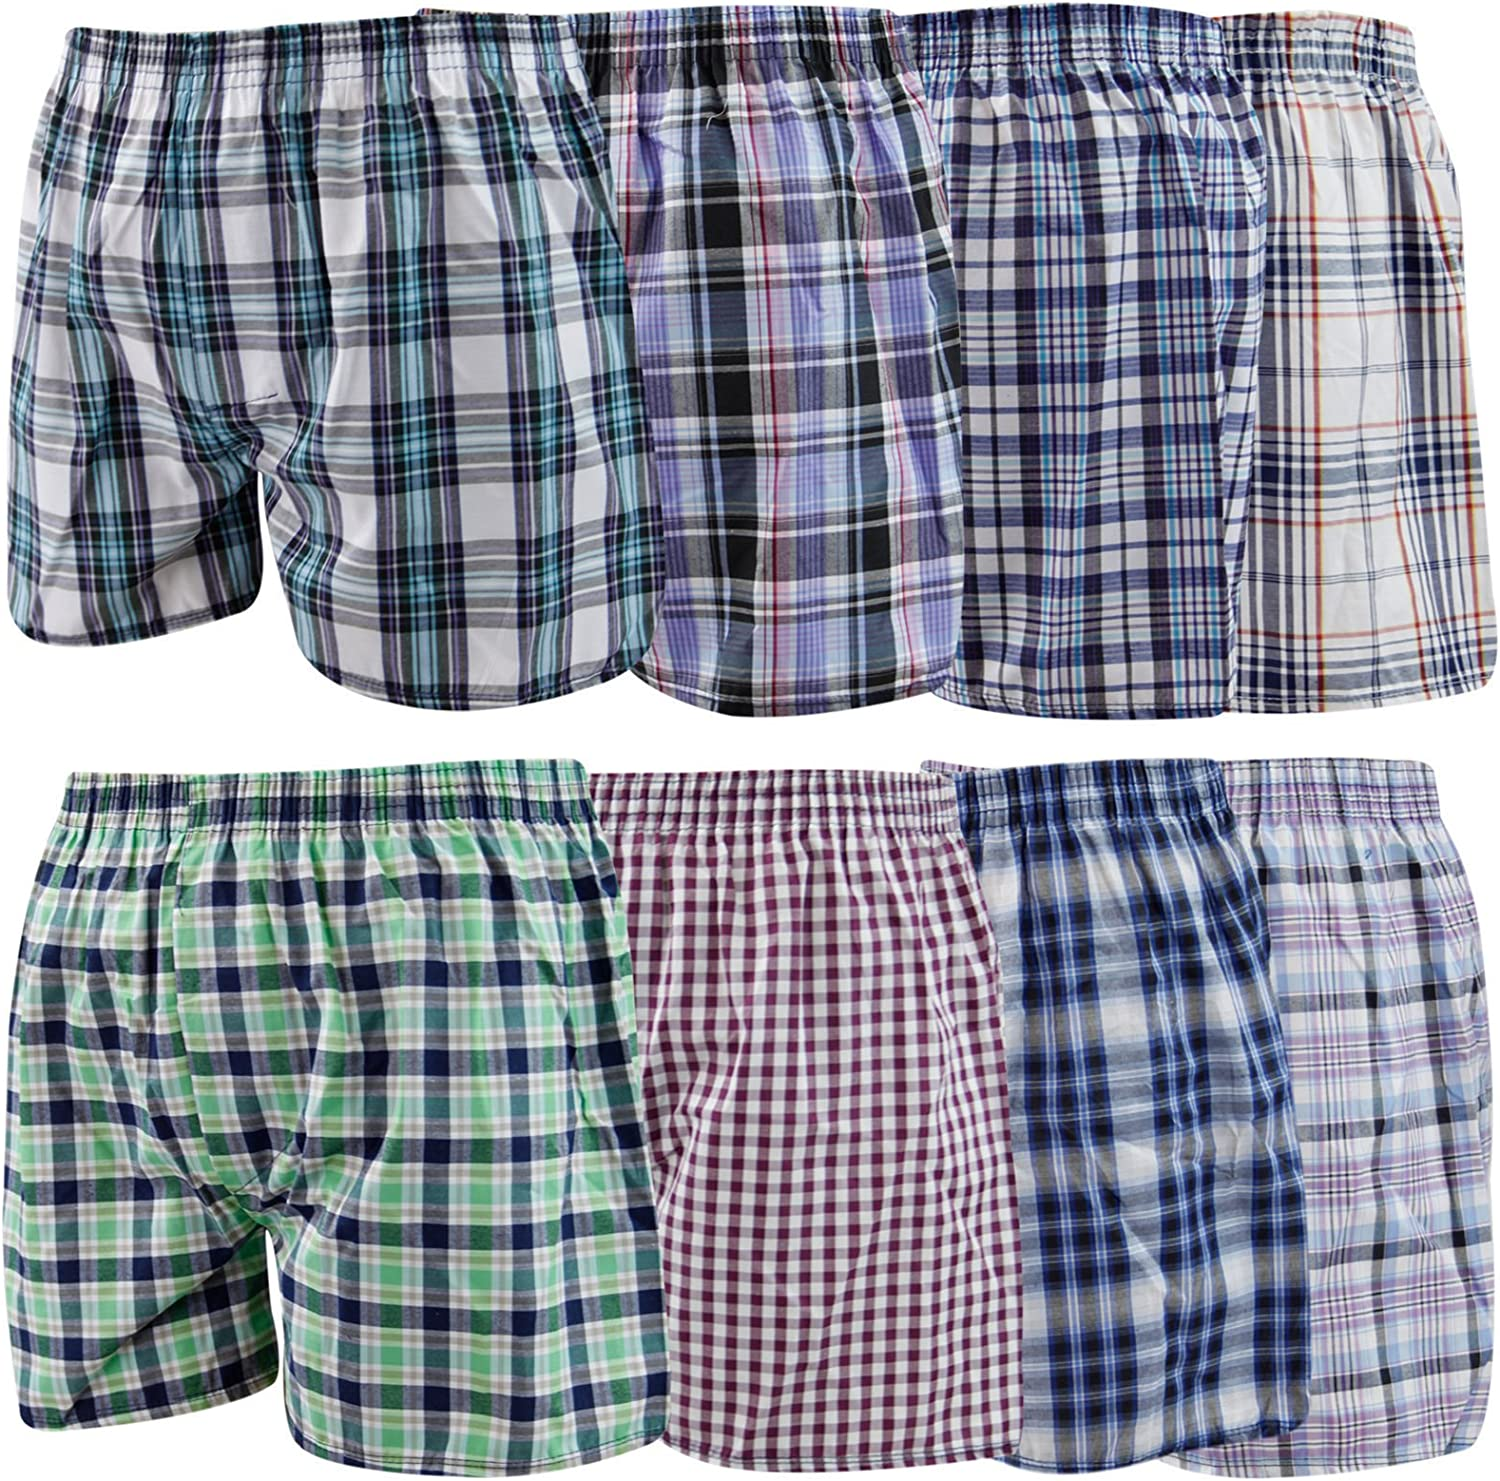 12 Mens Woven Boxer Shorts Loose Fit Poly Cotton Blend BoxersUnderwear 6 Pairs Medium 33-35 Waist Loose Boxers Fly